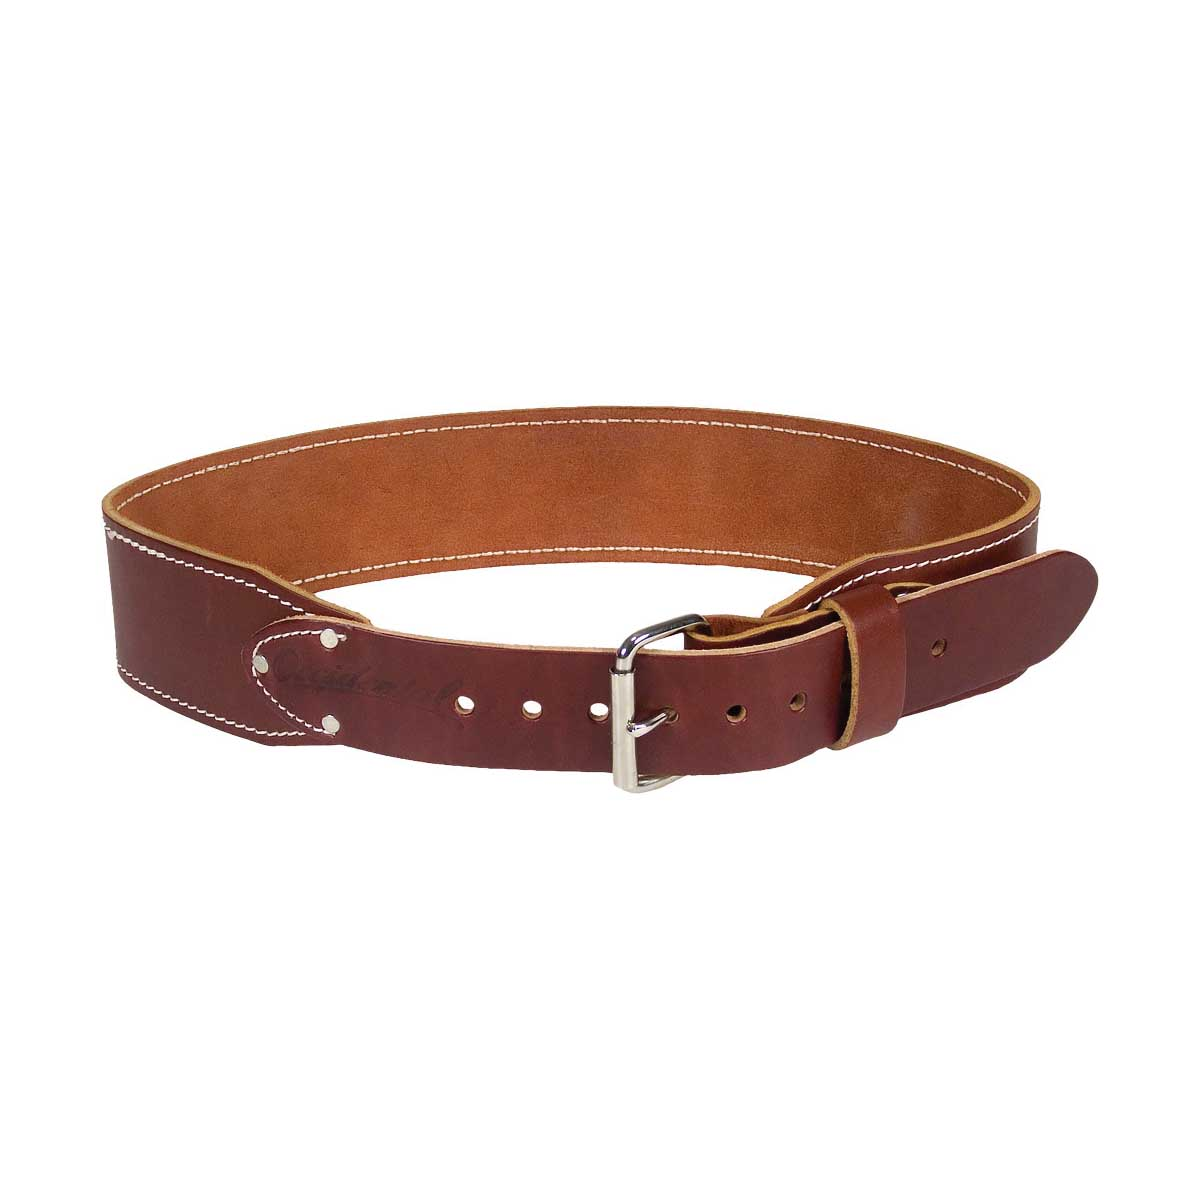 Picture of Occidental Leather 5035 LG Ranger Work Belt, 36 to 39 in Waist, 48 in L, Leather, Brown